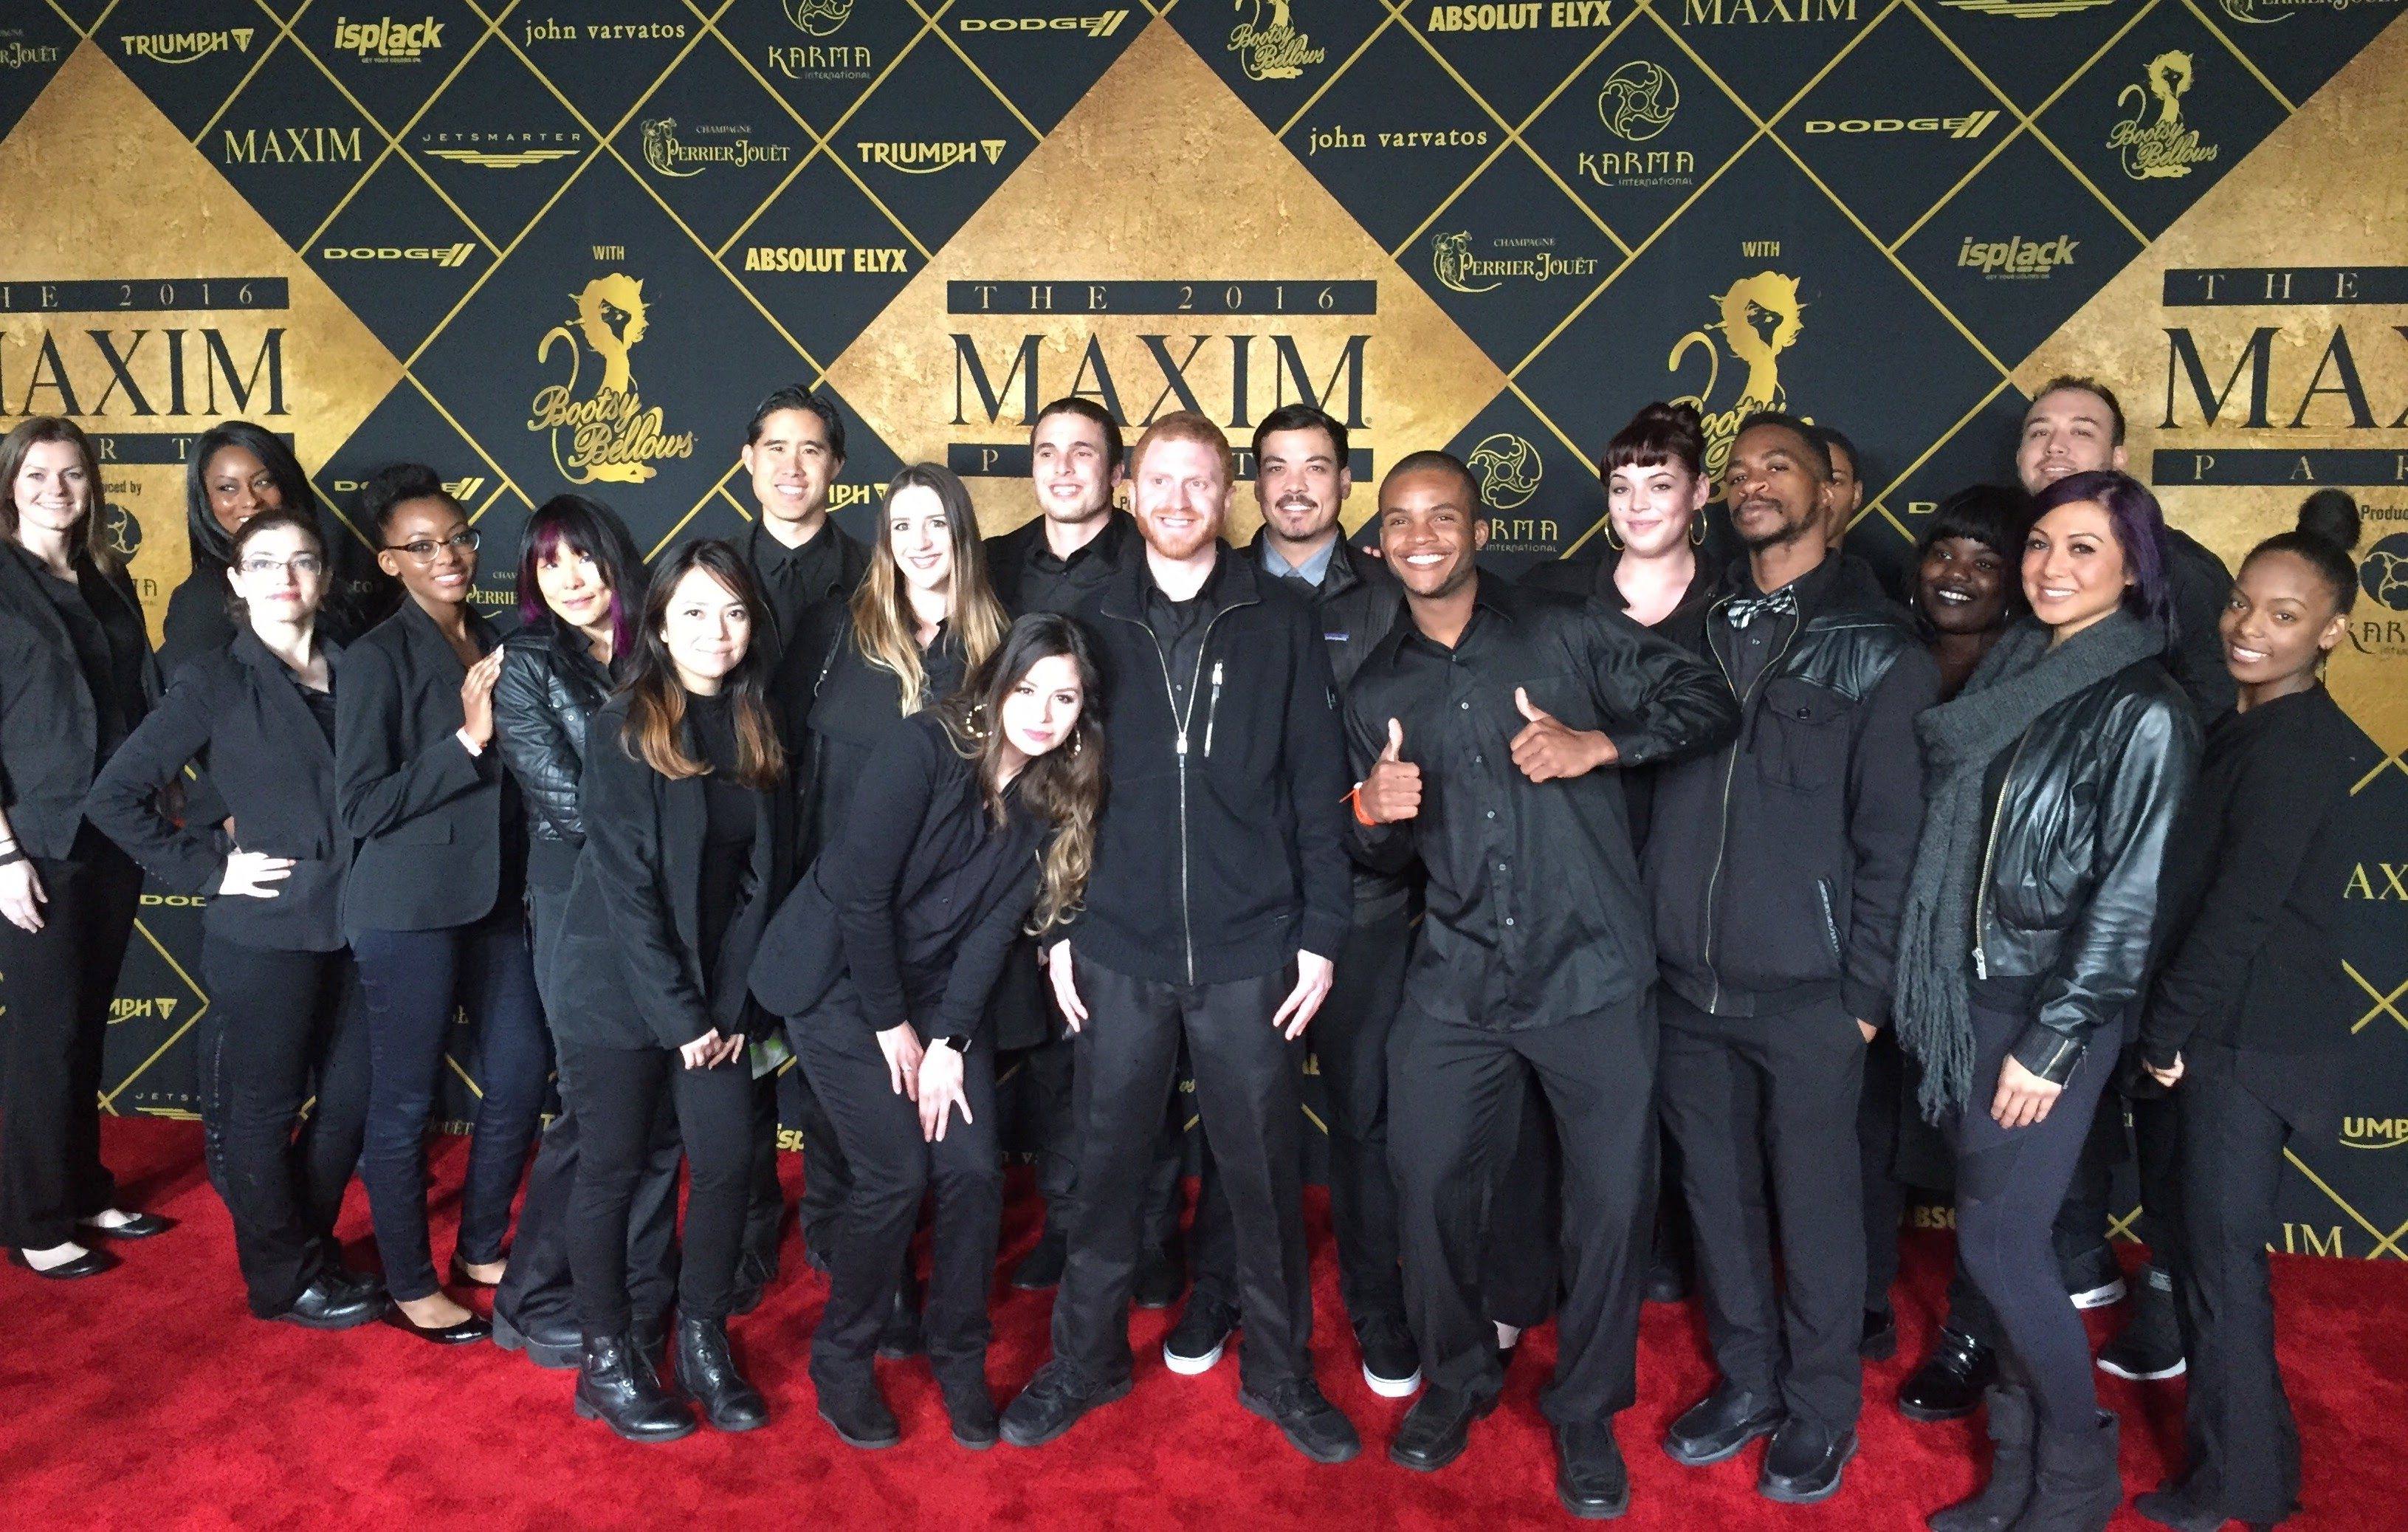 Event Staff at Maxim event for Super Bowl 50 in San Francisco.